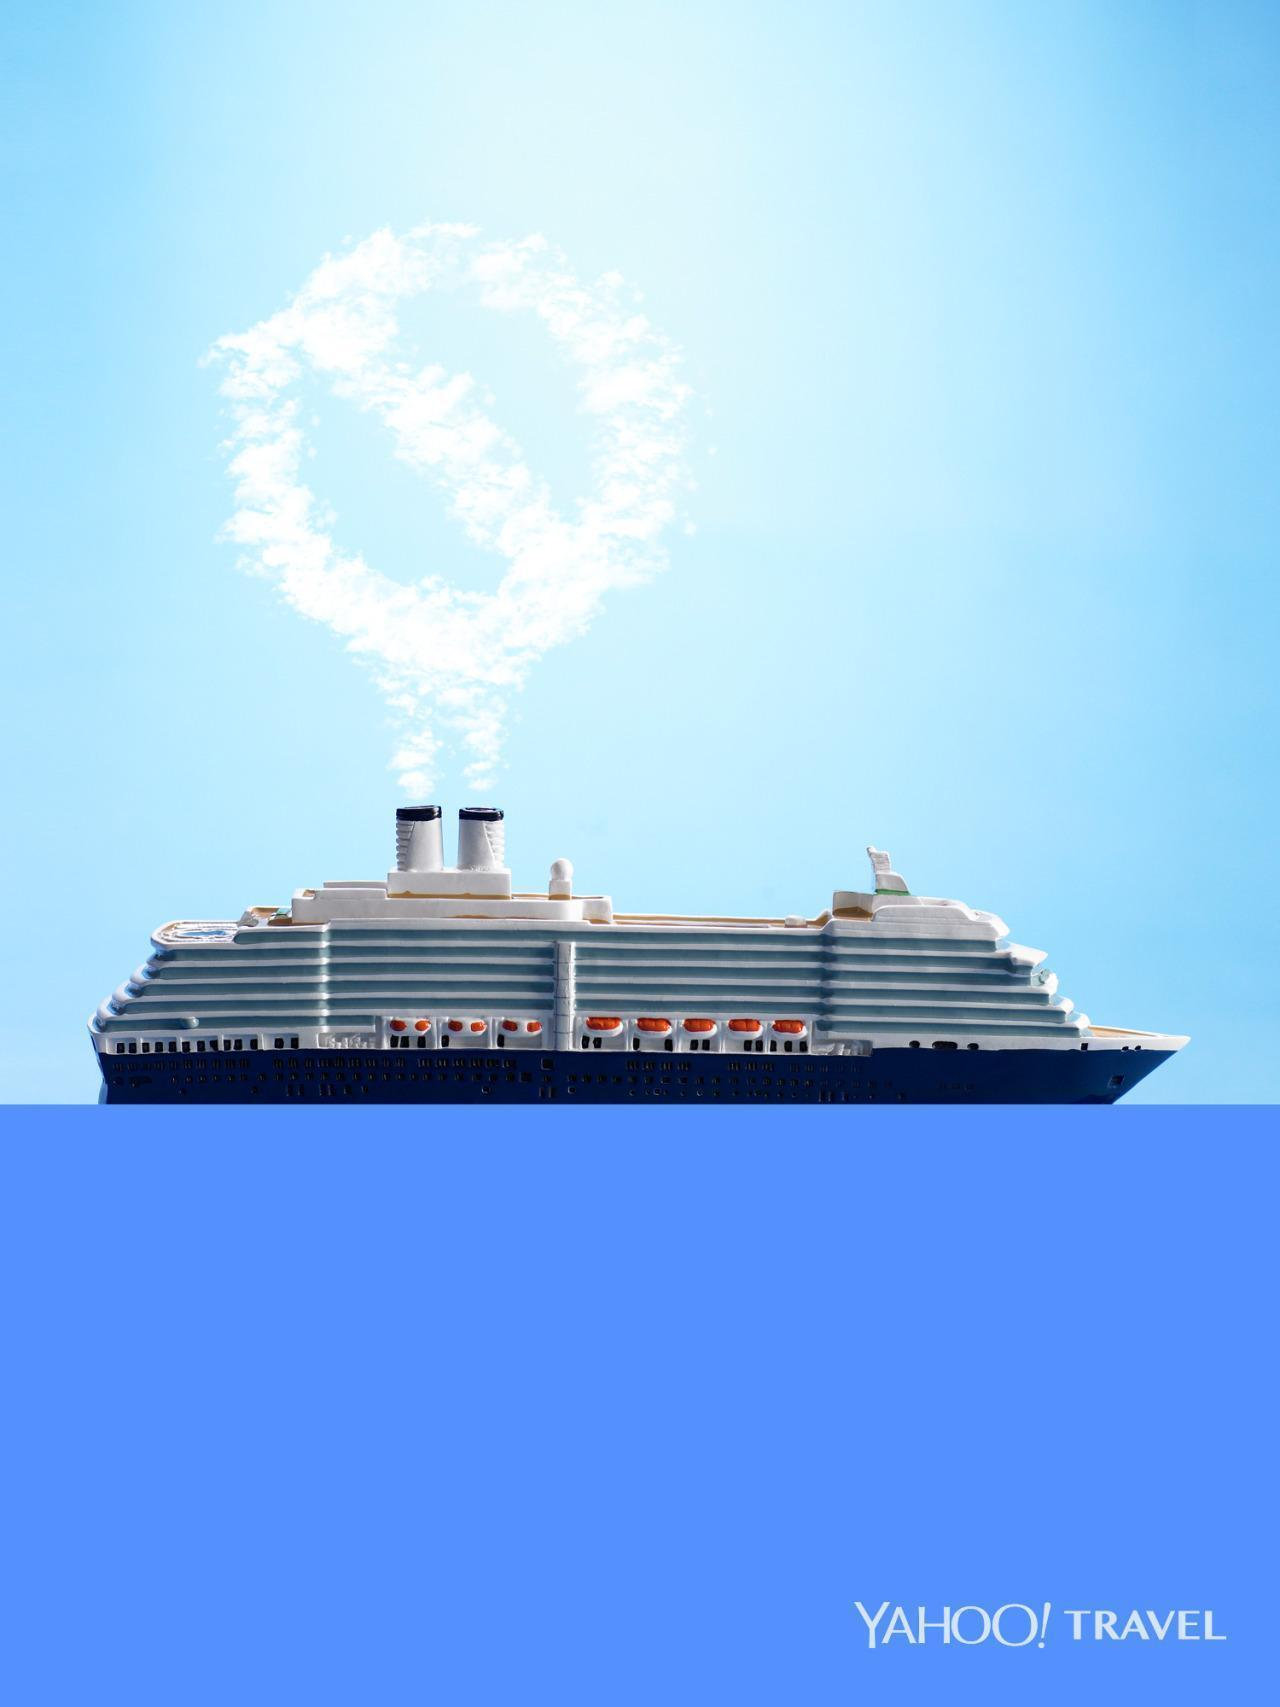 7 Things Not To Do Before You Board A Cruise Ship